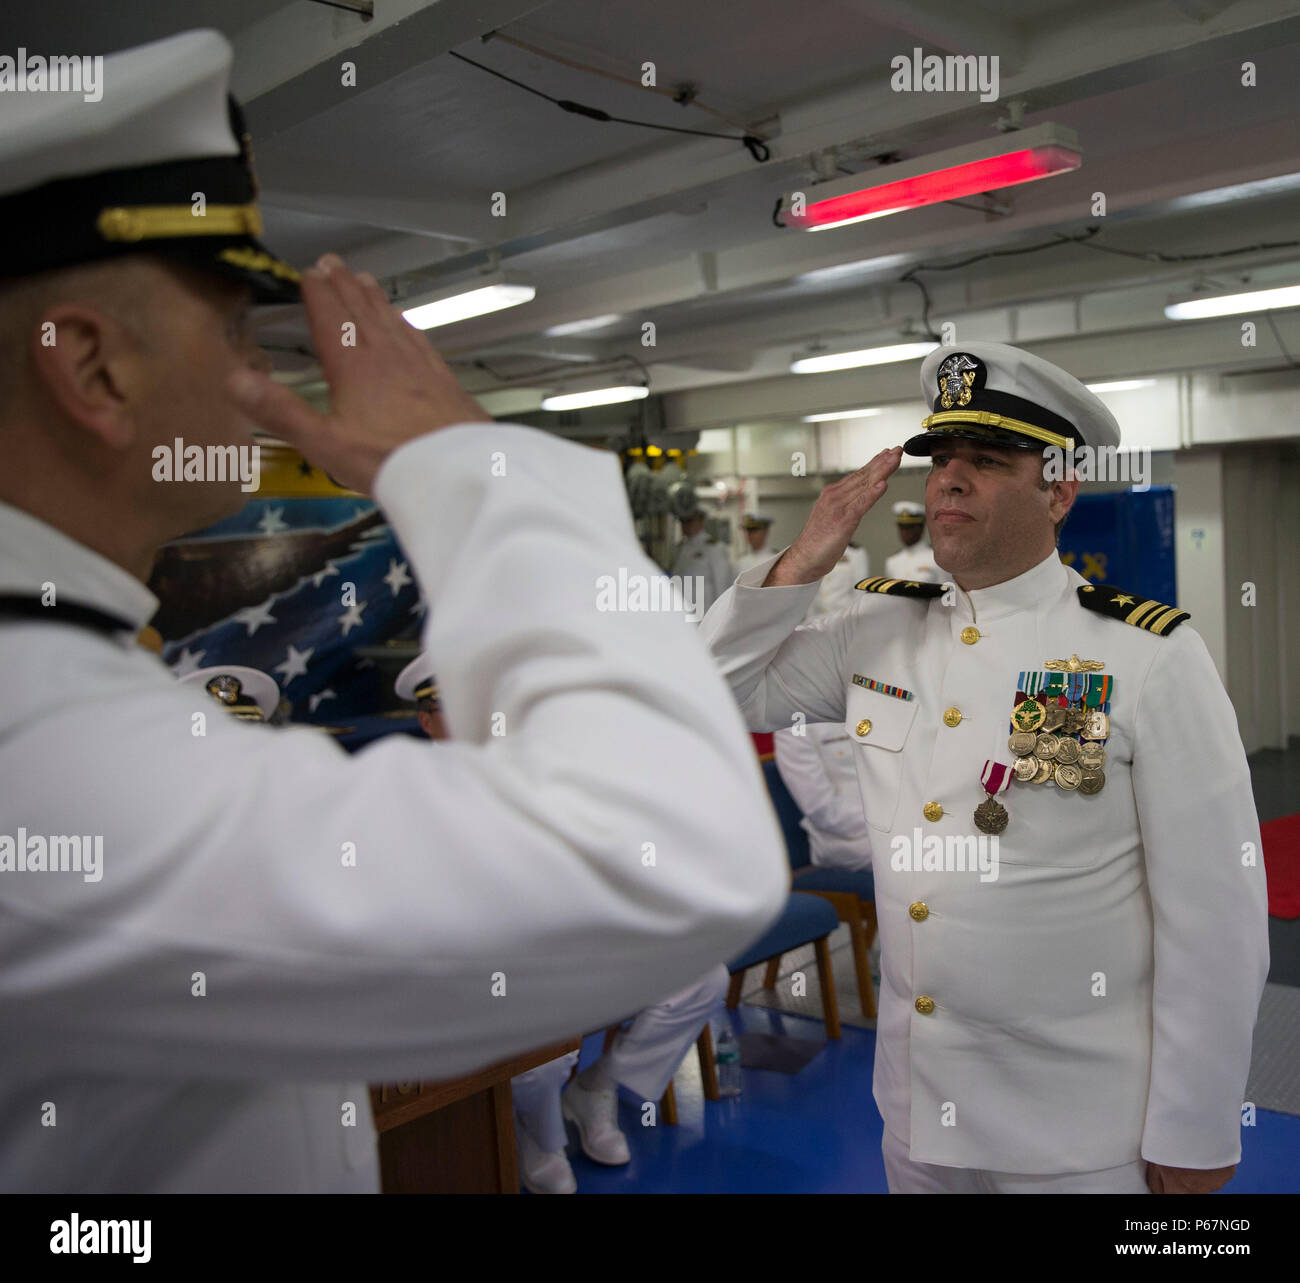 NEWPORT NEWS, Va. (May 13, 2016) --Cmdr. Allan Feenstra, chief engineer, Pre-Commissioning Unit Gerald R. Ford (CVN 78) relieves Lt. Cmdr. Michael Stone of duty during a retirement ceremony in the ship's forecastle. Ford is the first of a new class of aircraft carriers currently under construction by Huntington Ingalls Industries Newport News Shipbuilding.  (U.S. Navy photo by Mass Communication Specialist Seaman Apprentice Connor Loessin/Released) - Stock Image